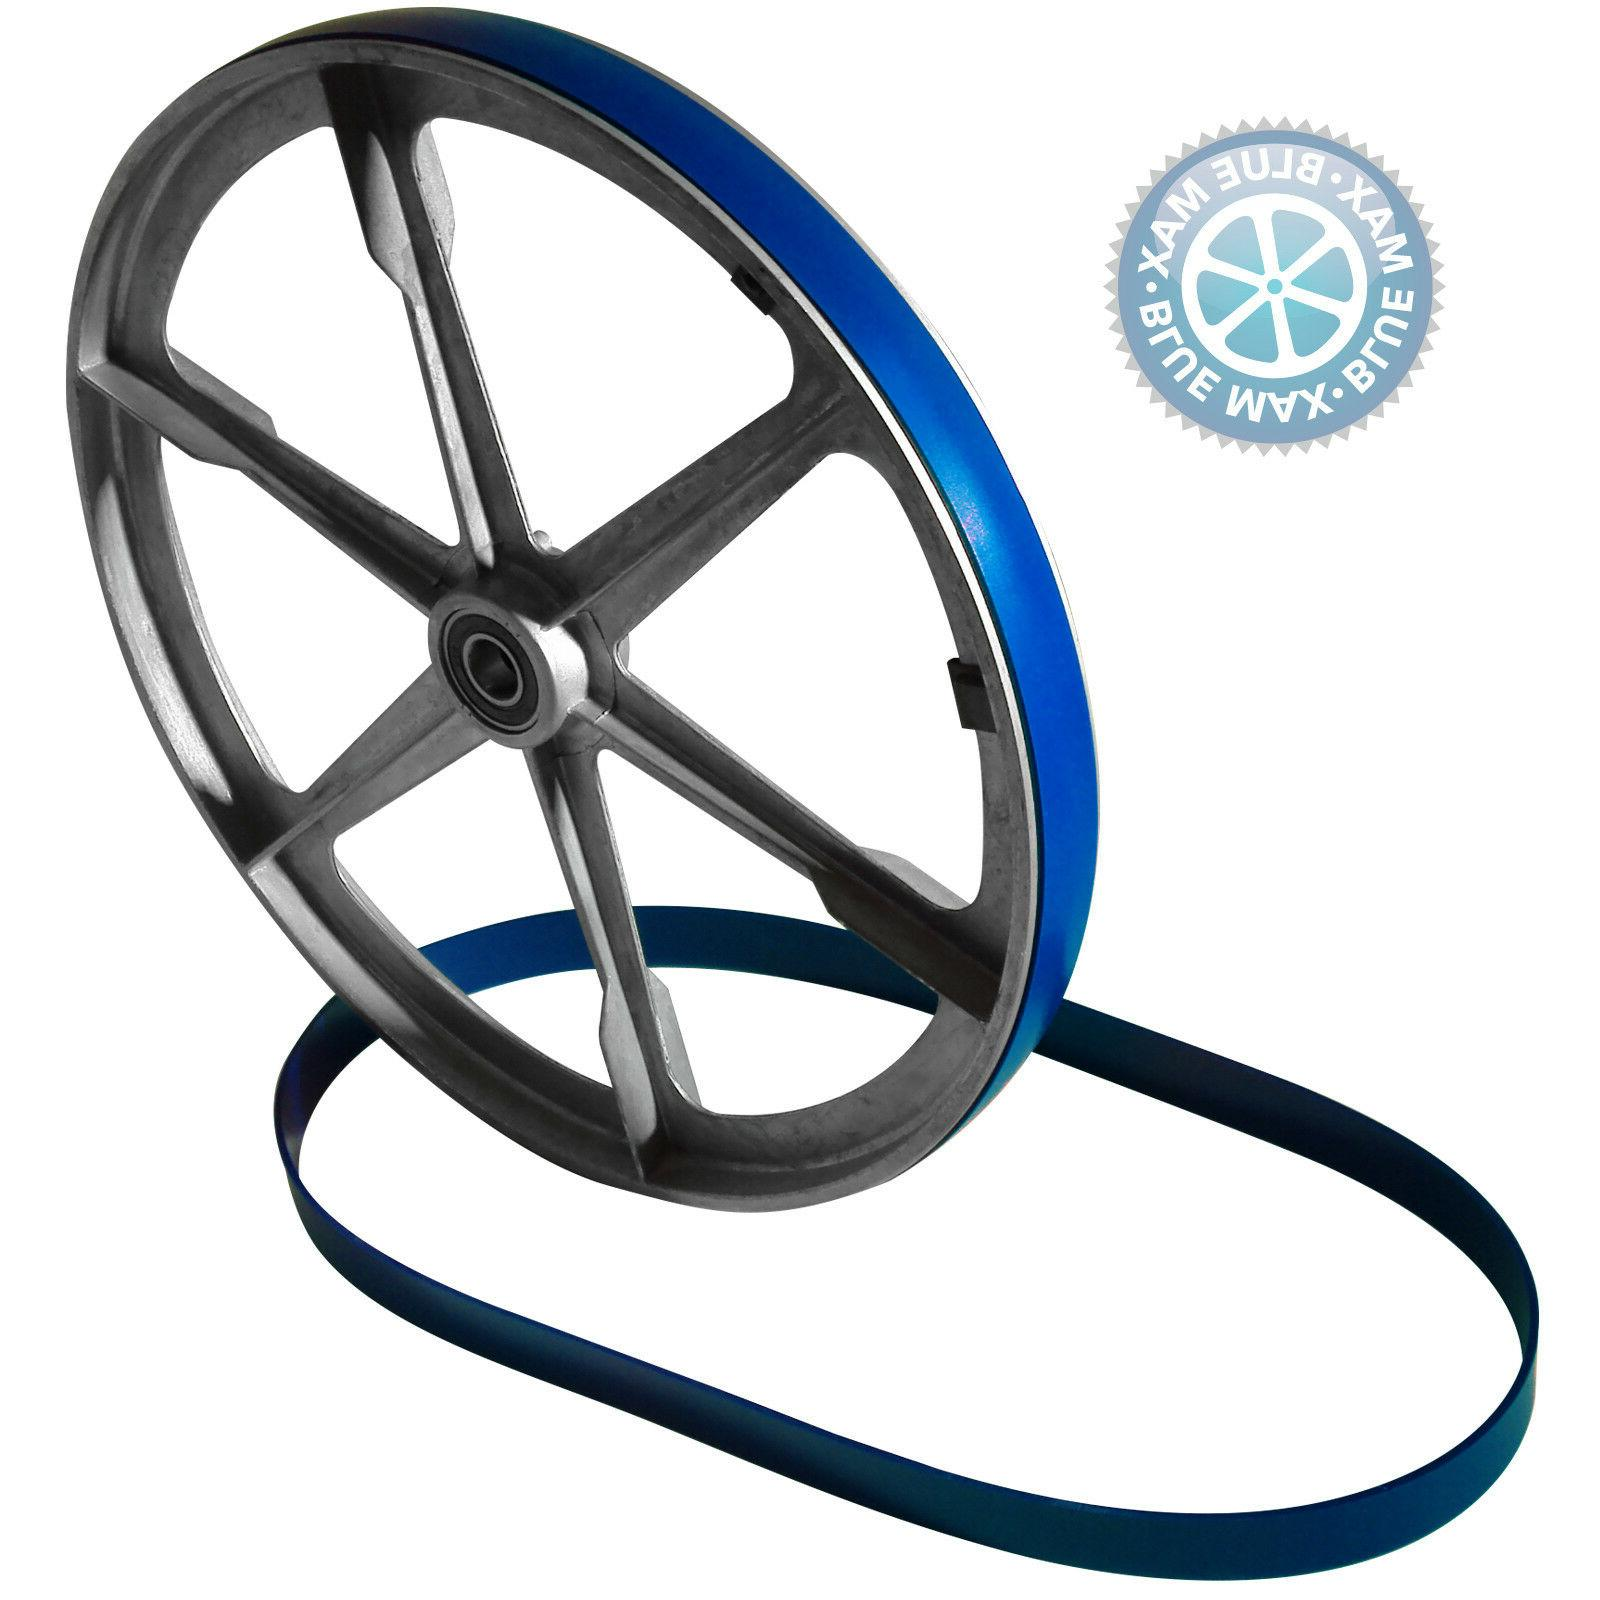 2 BLUE MAX URETHANE BAND SAW TIRES FOR CENTRAL MACHINERY VBS